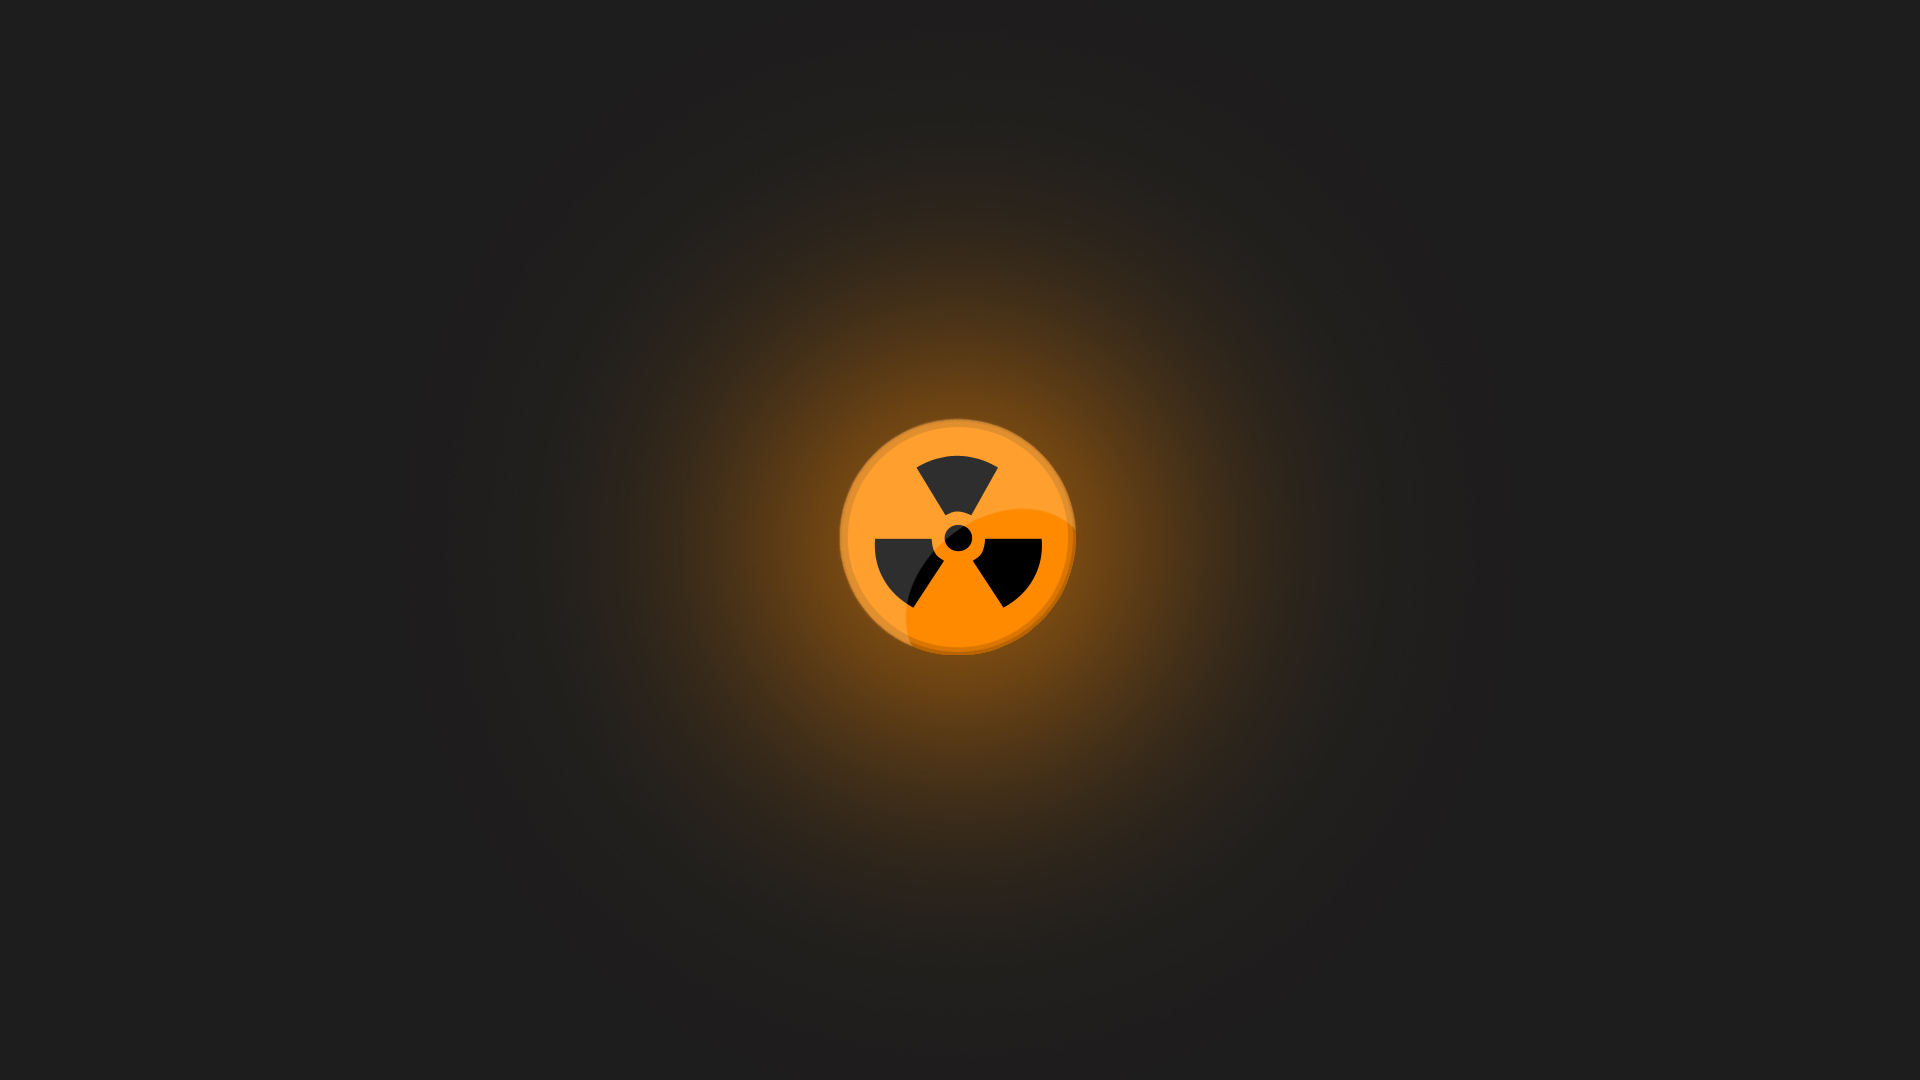 Nuke Wallpaper by qcezwsx 1920x1080